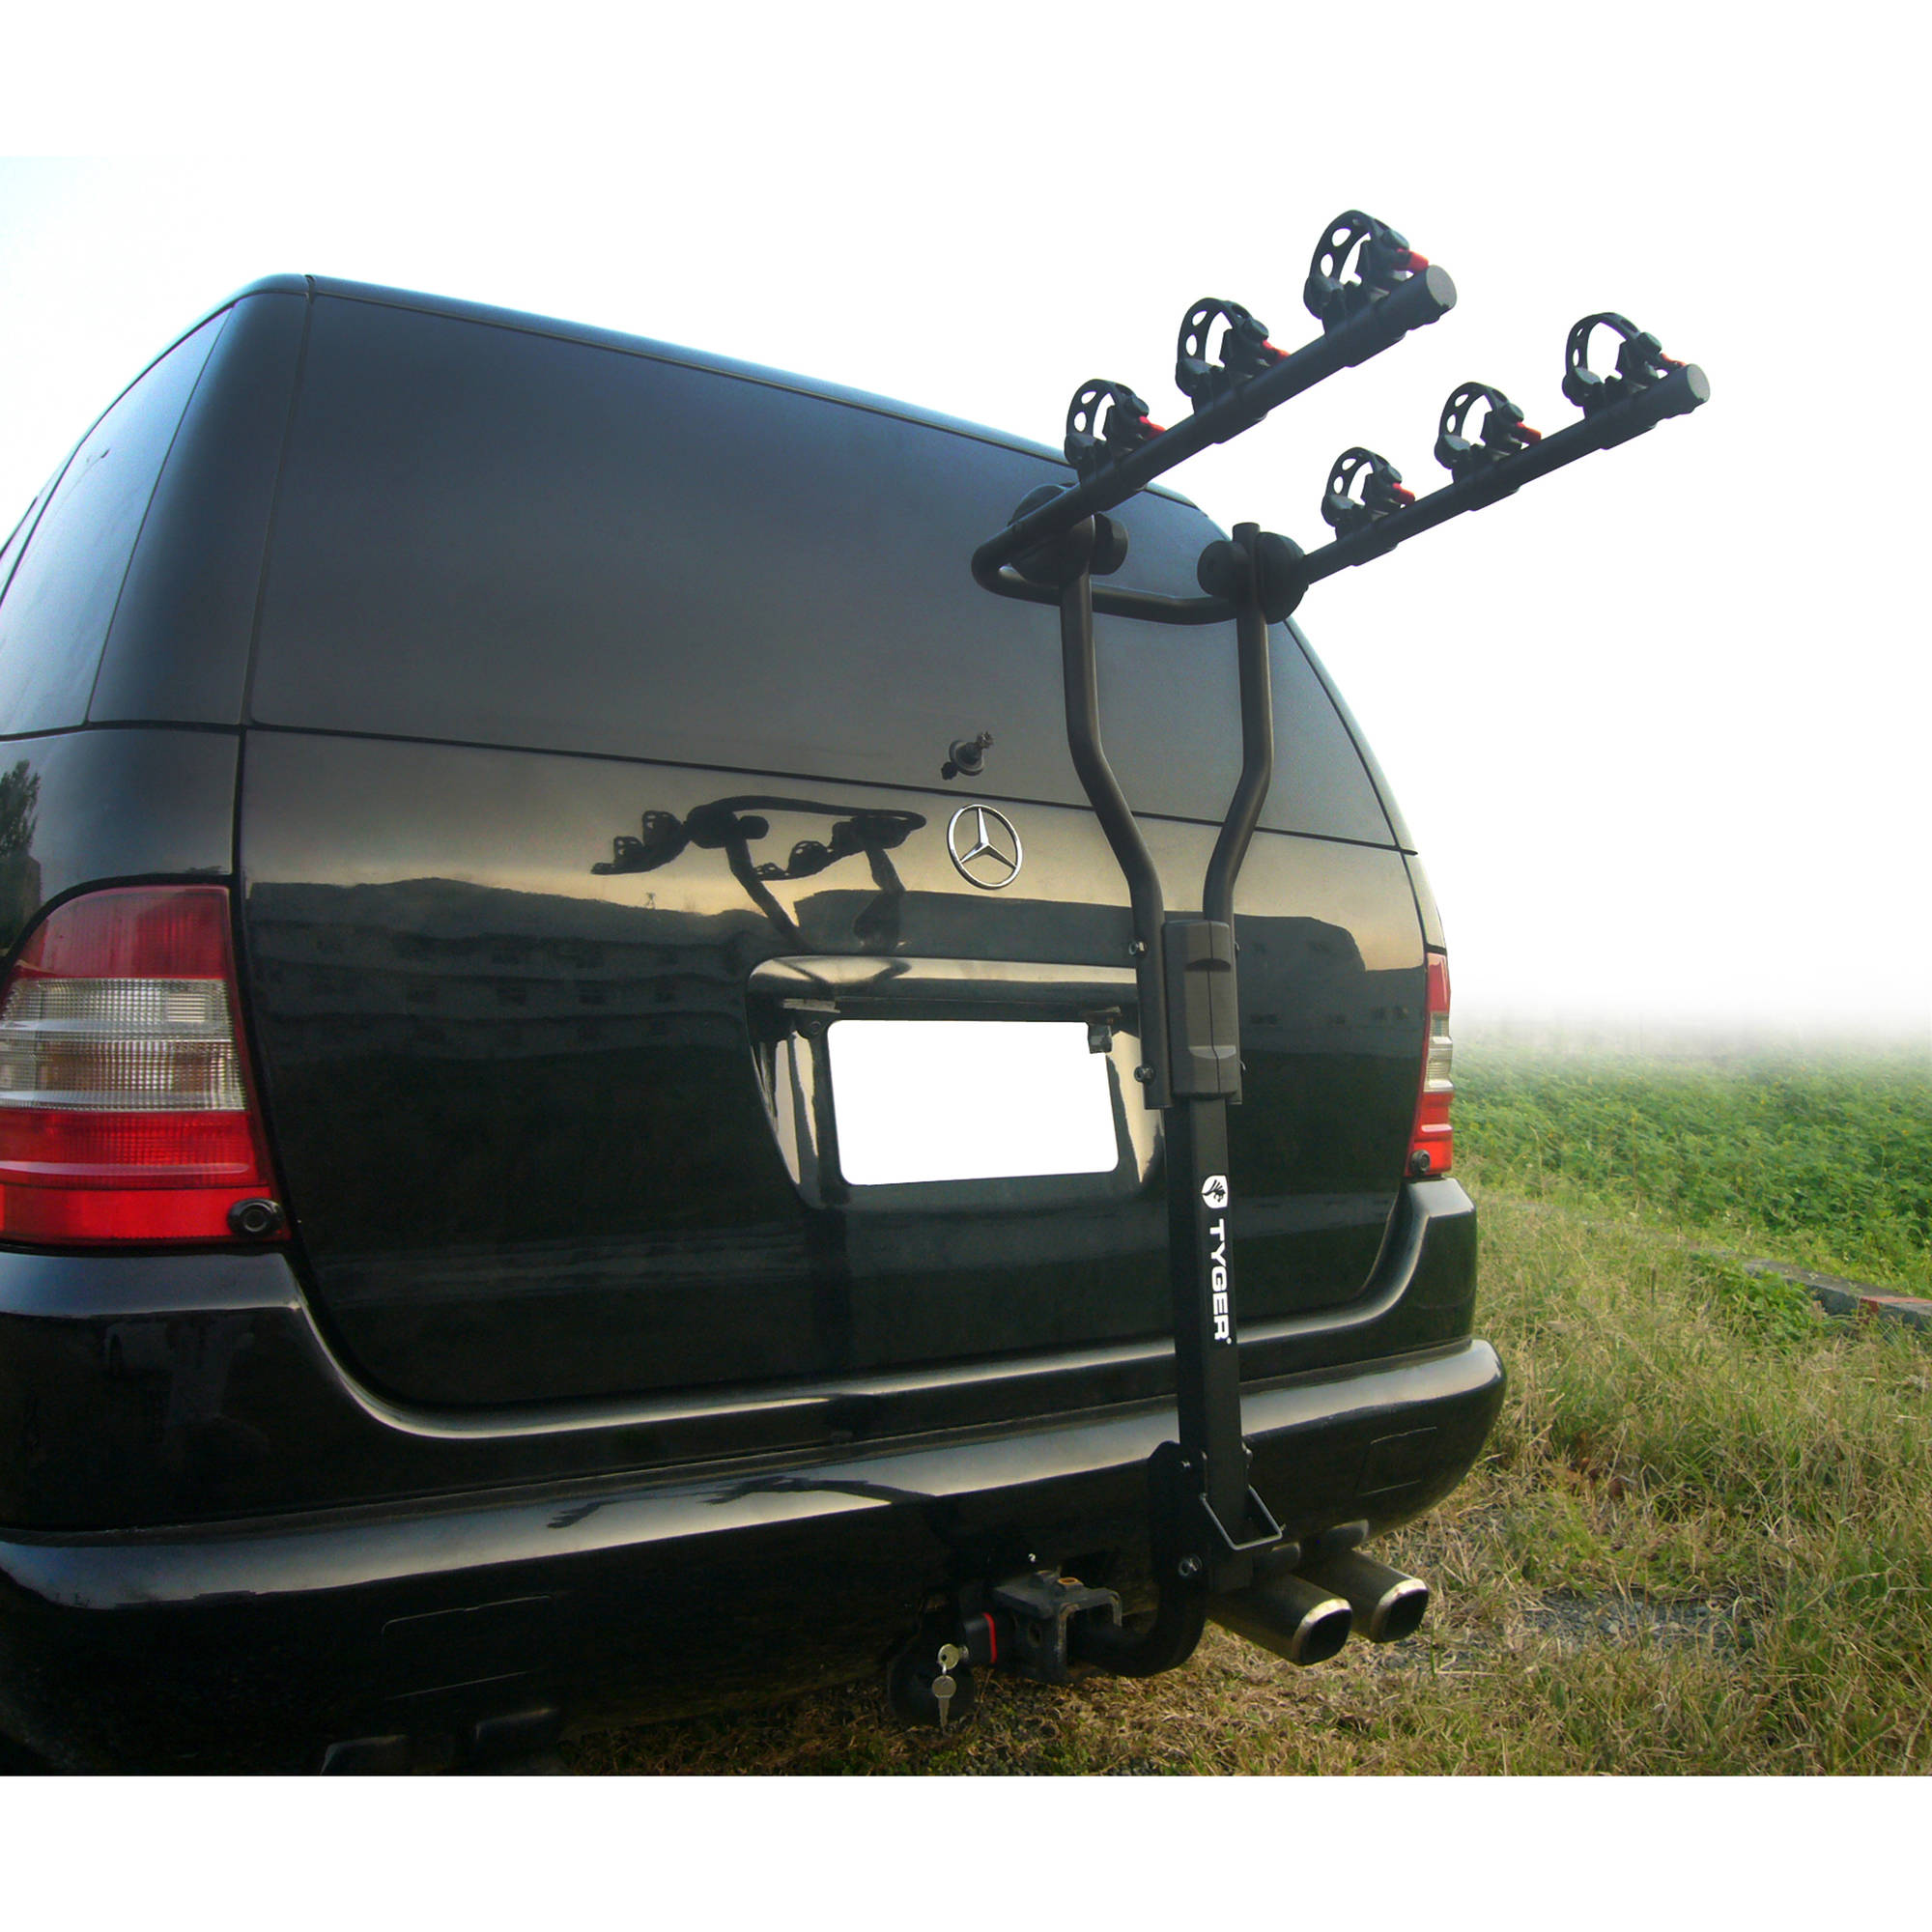 tyger 3 bike carrier rack with lock black fits 1 1 4 and 2 hitch receivers